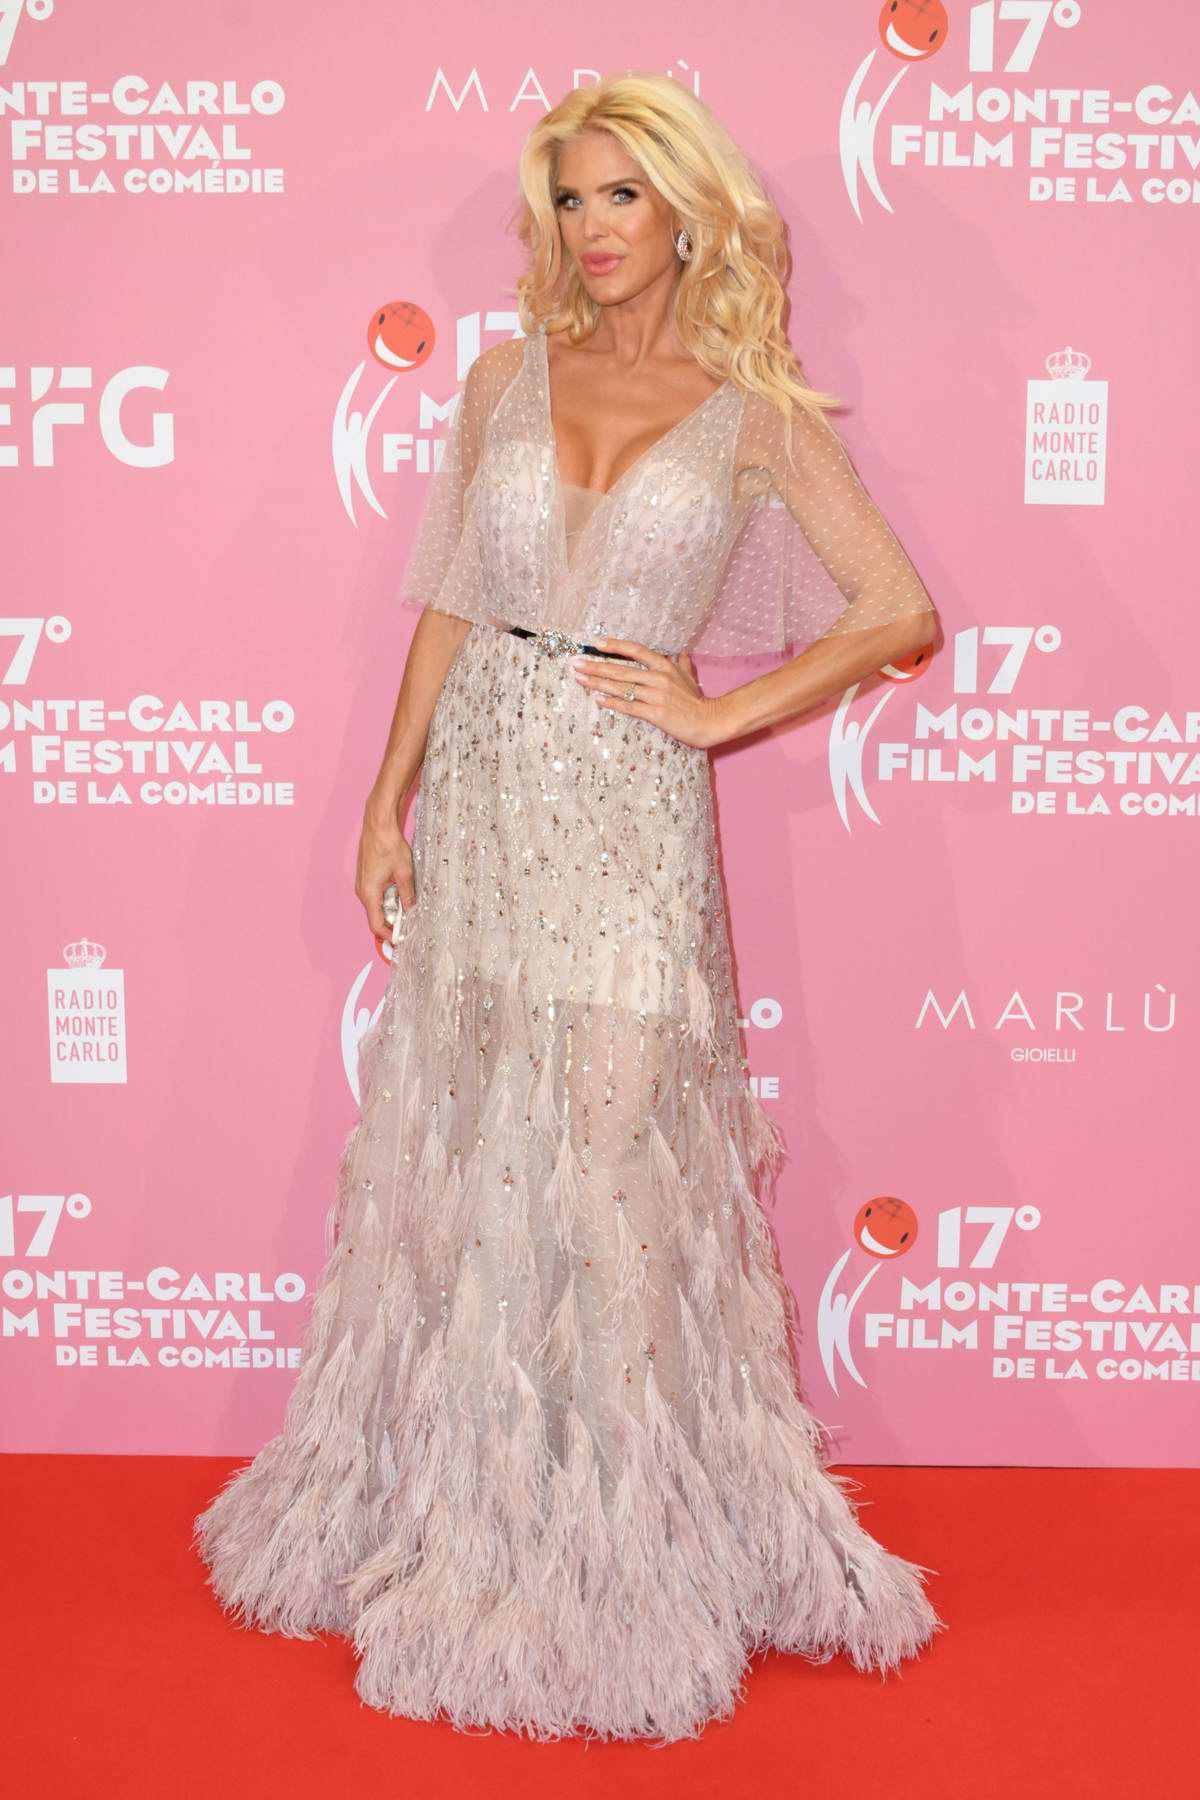 Victoria Silvstedt attends the Red Carpet Gala and awards ceremony during the 17° Monte-Carlo Film Festival De La Comedie in Monaco